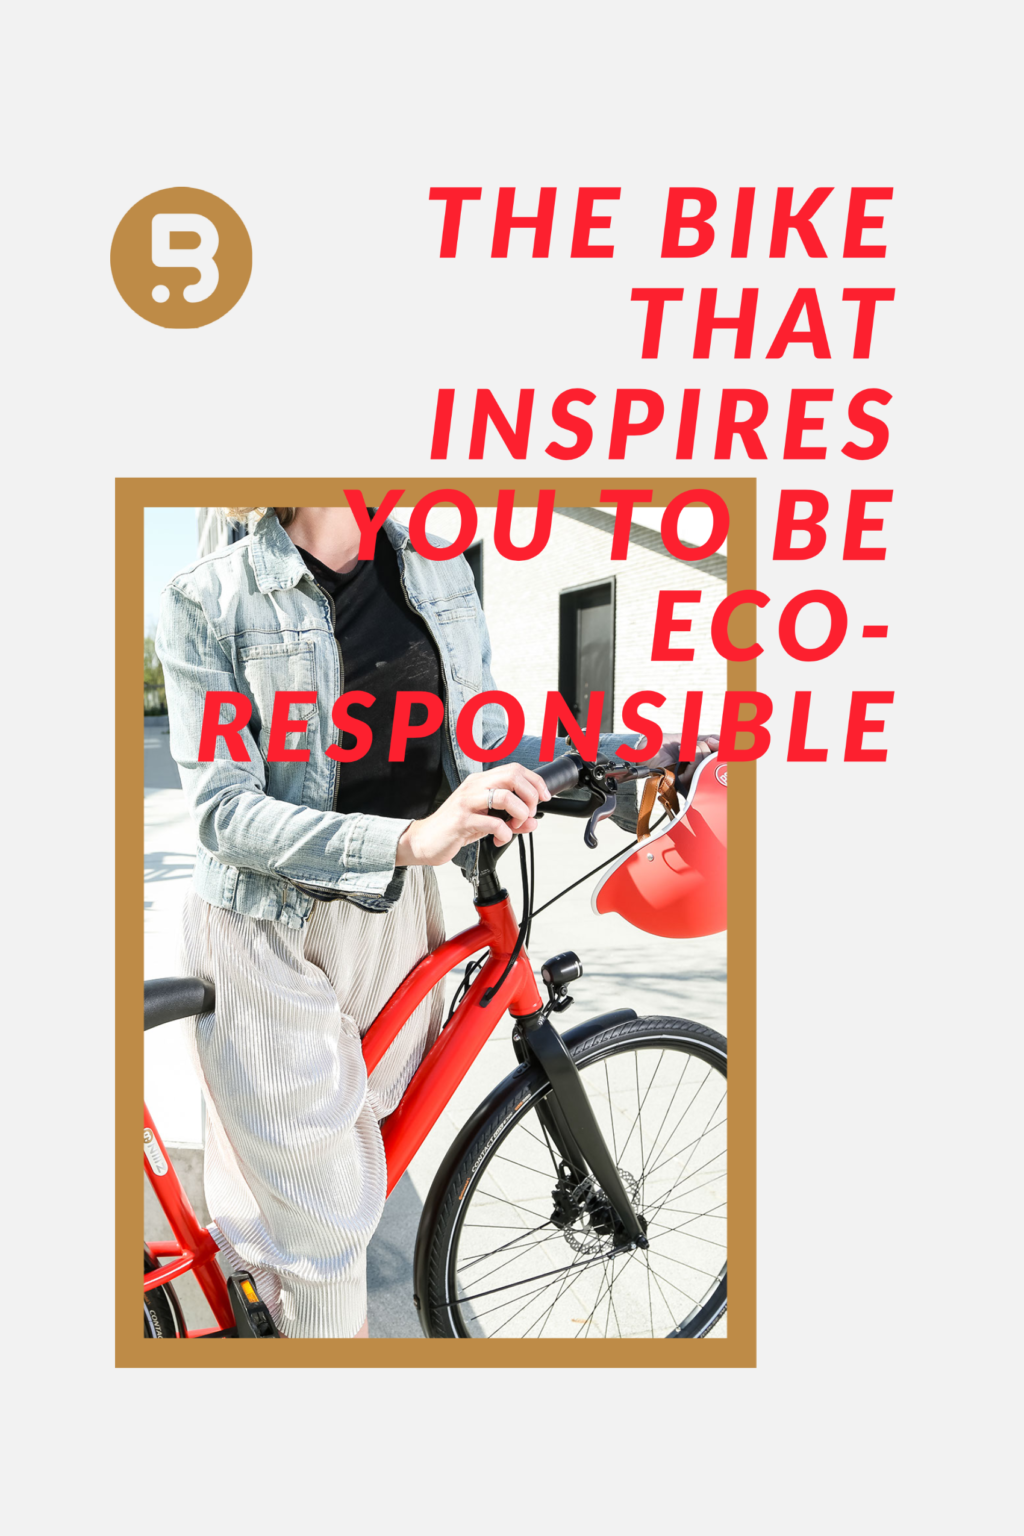 The bike that inspires you to be eco-responsible.